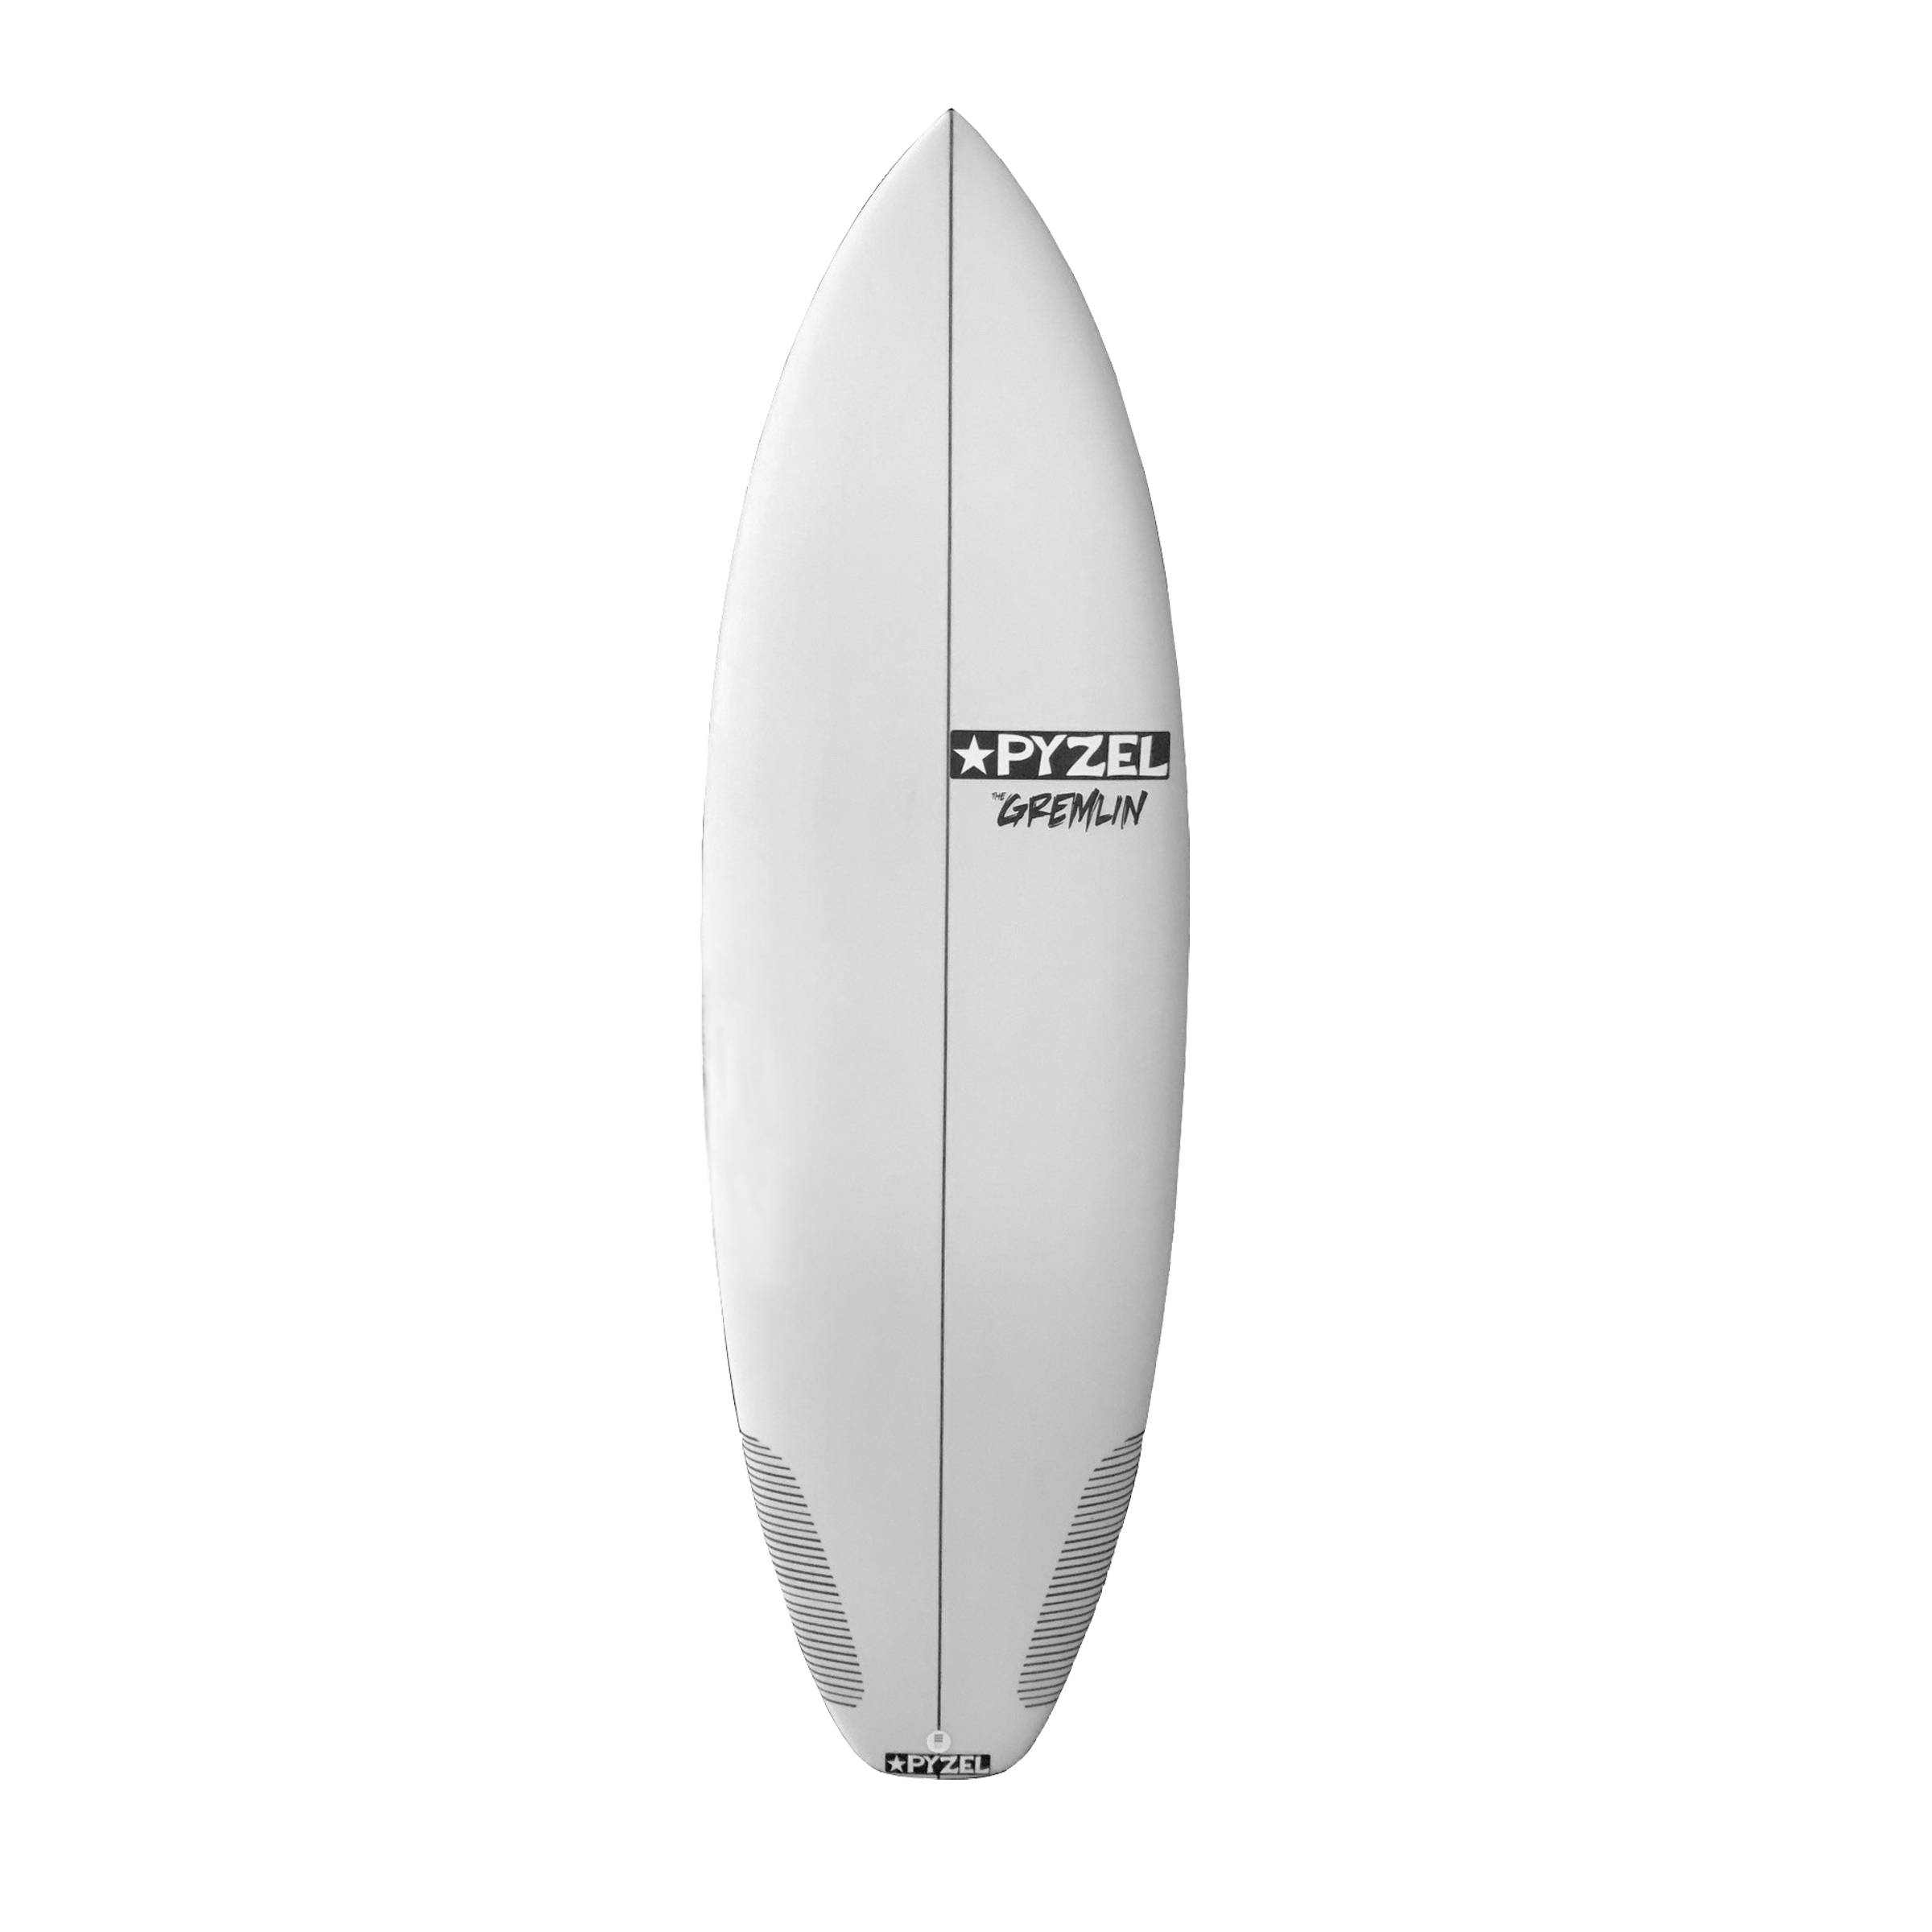 Pyzel SS21 Surfboards